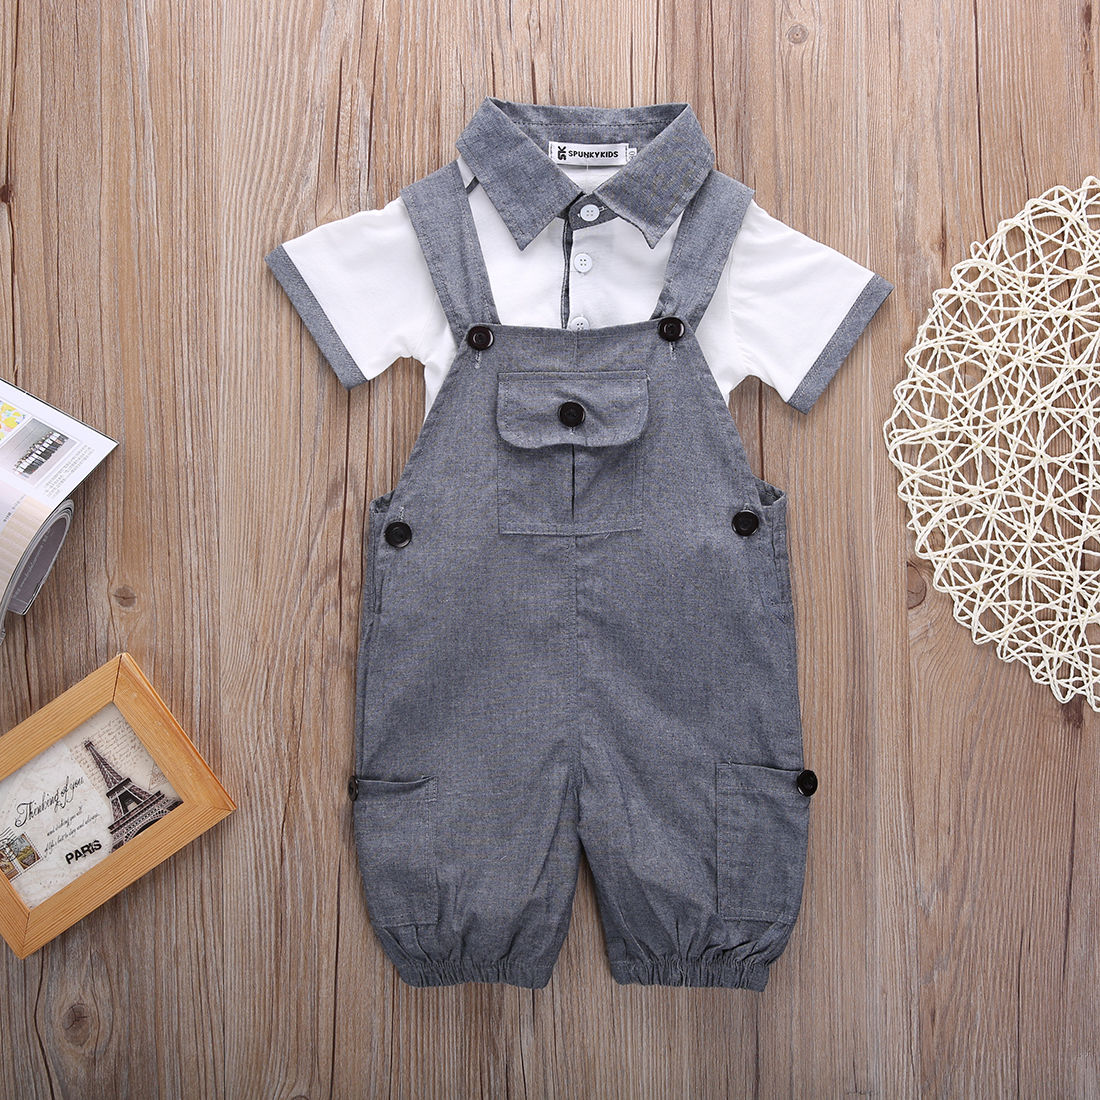 4ffe550f9858 Pudcoco Infant Clothing Baby Boys T shirt and Dungaree Shorts 2 ...